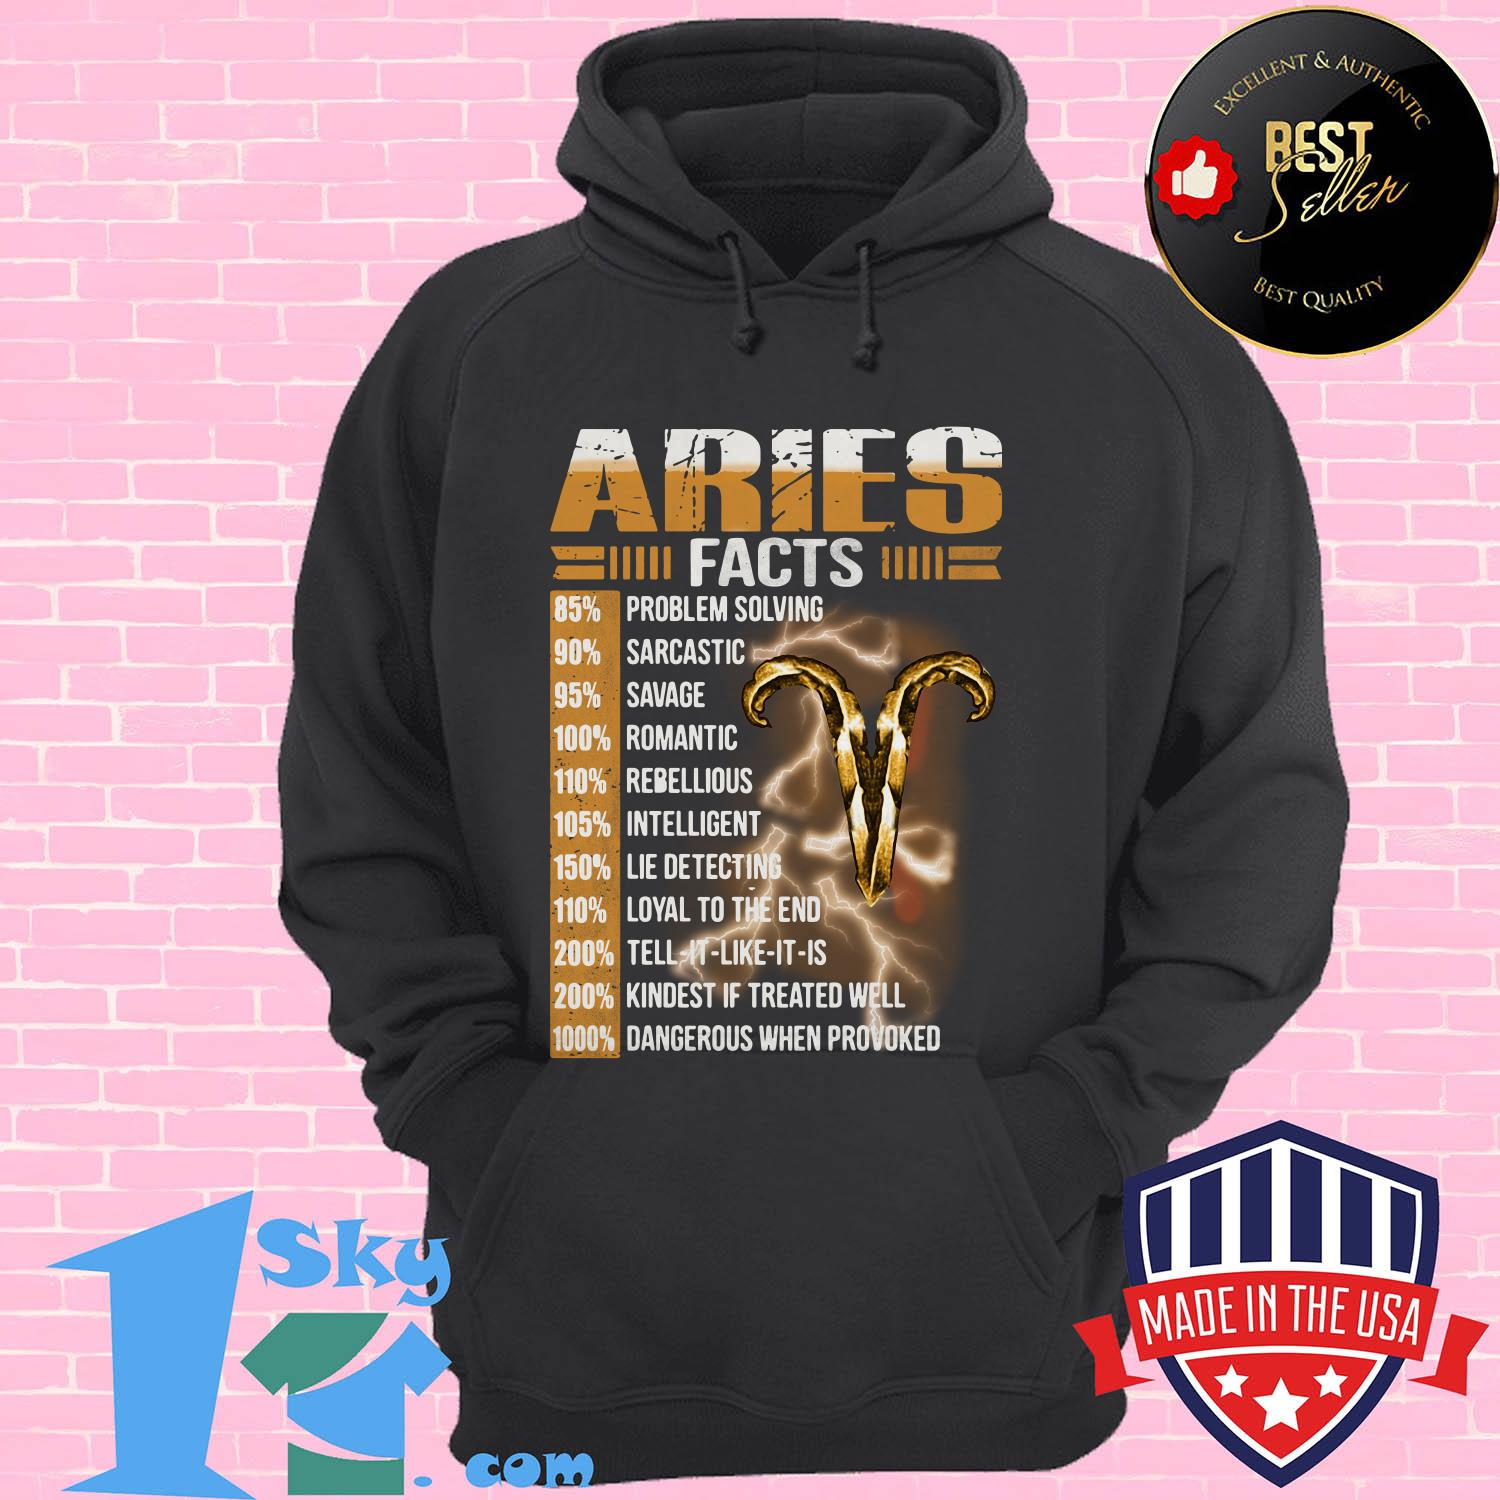 aries facts 85 problem solving 90 sarcastic 95 savage hoodie - Aries facts 85% problem solving 90% sarcastic 95% savage shirt